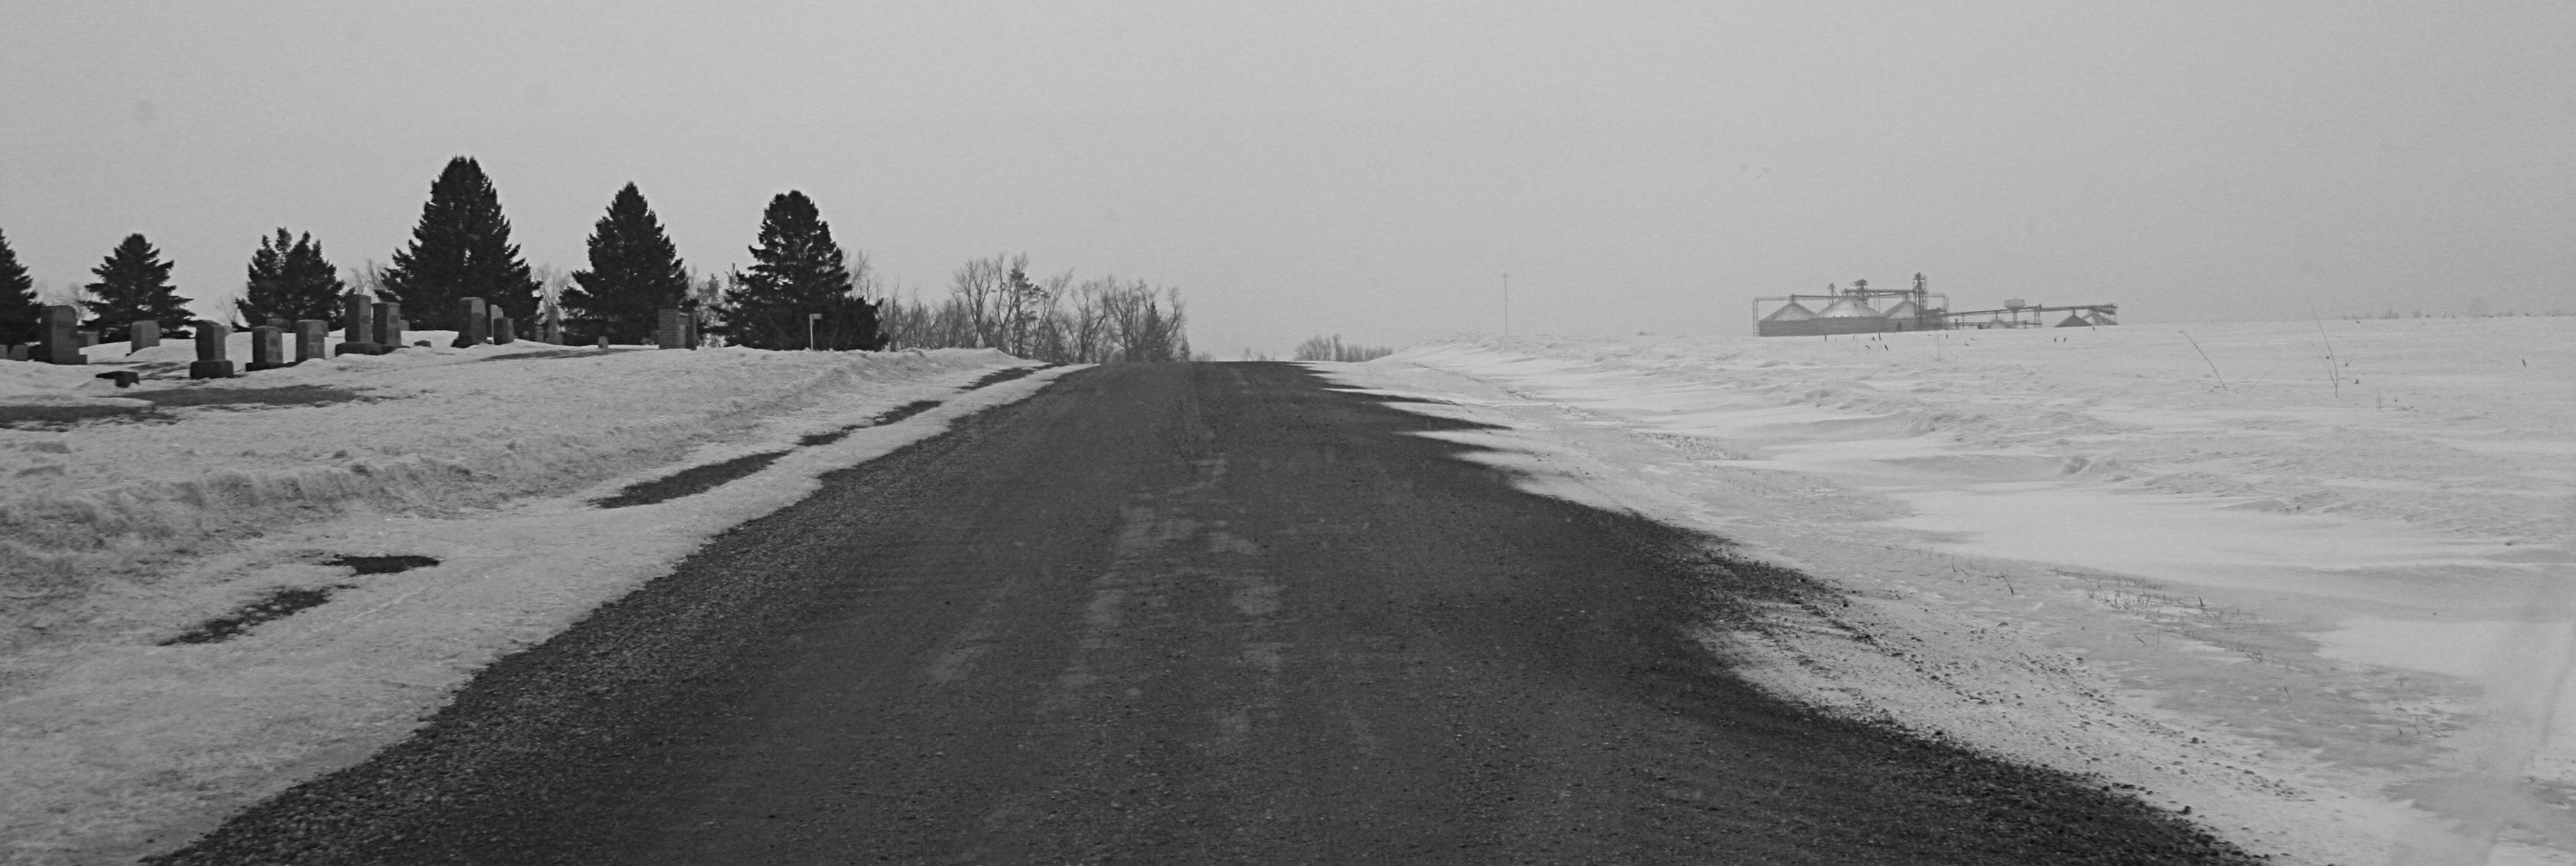 The road past the Vesta Cemetery, which sits just outside of this southwestern Minnesota town of some 330.